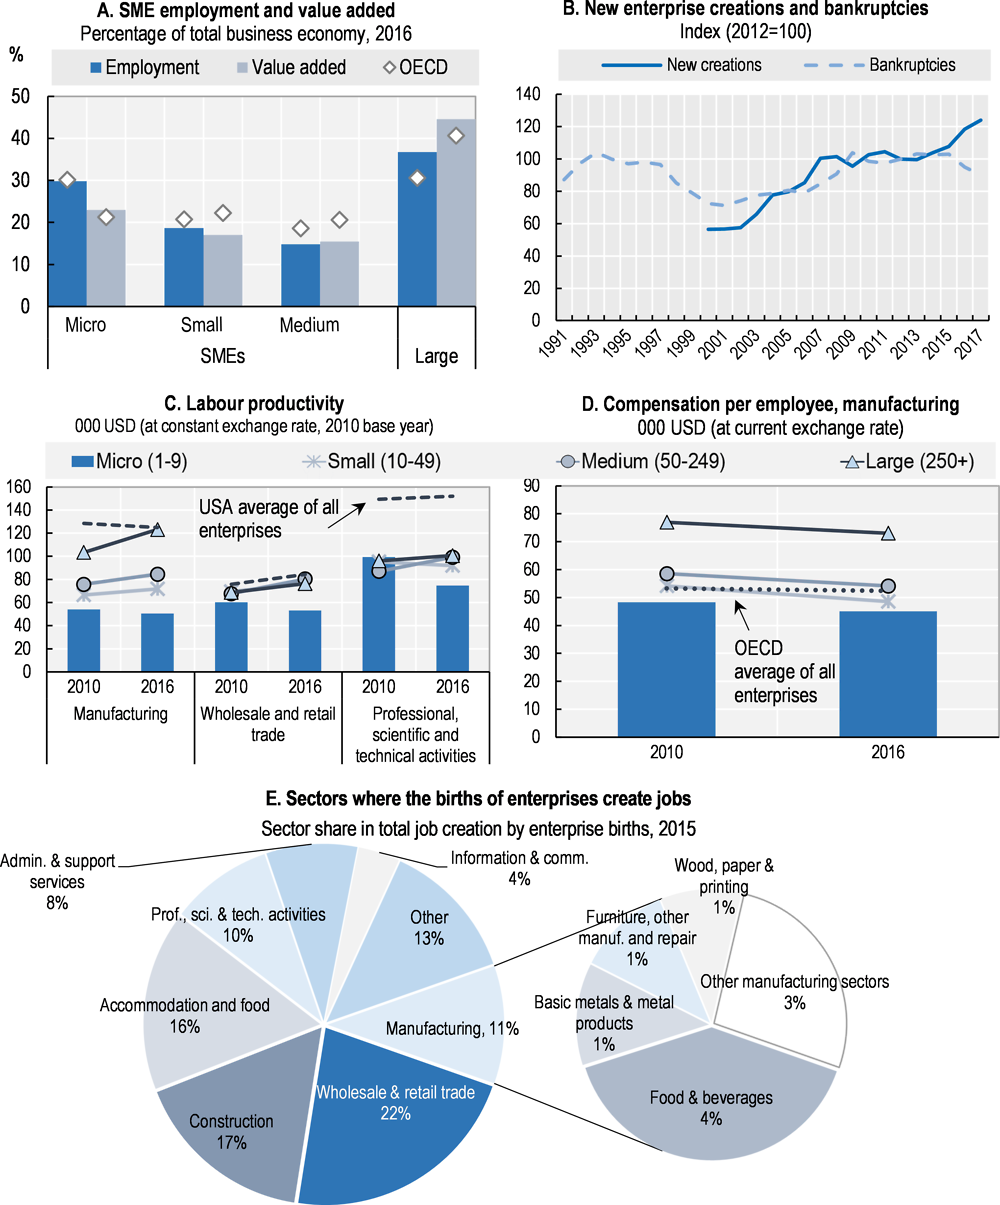 Figure 18.1. Structure and performance of the SME sector in France